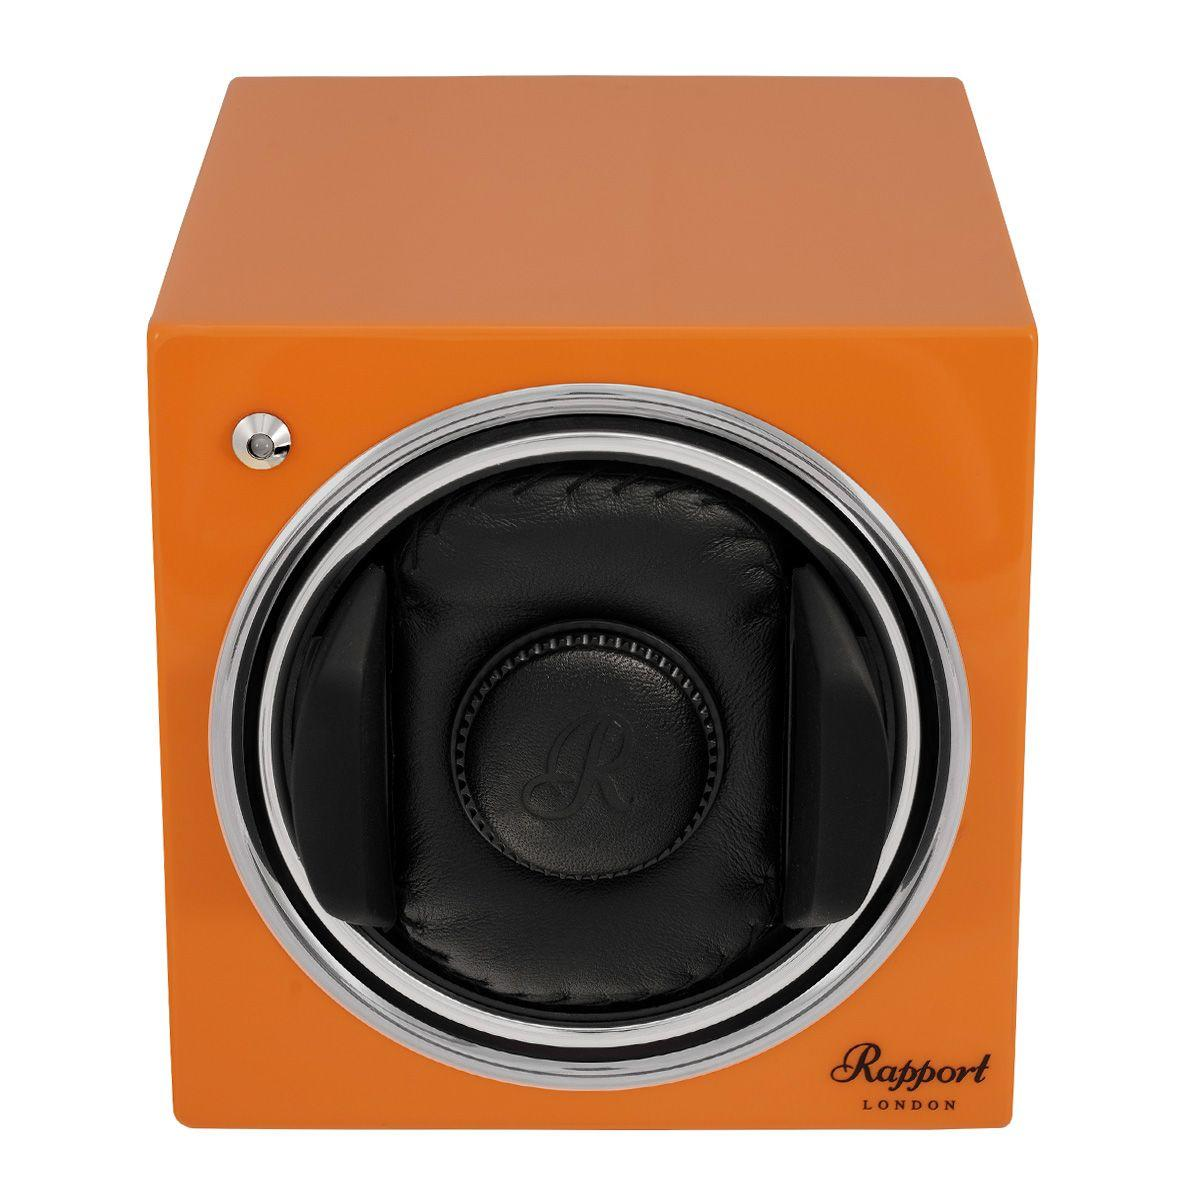 Rapport Cube Watch Winder